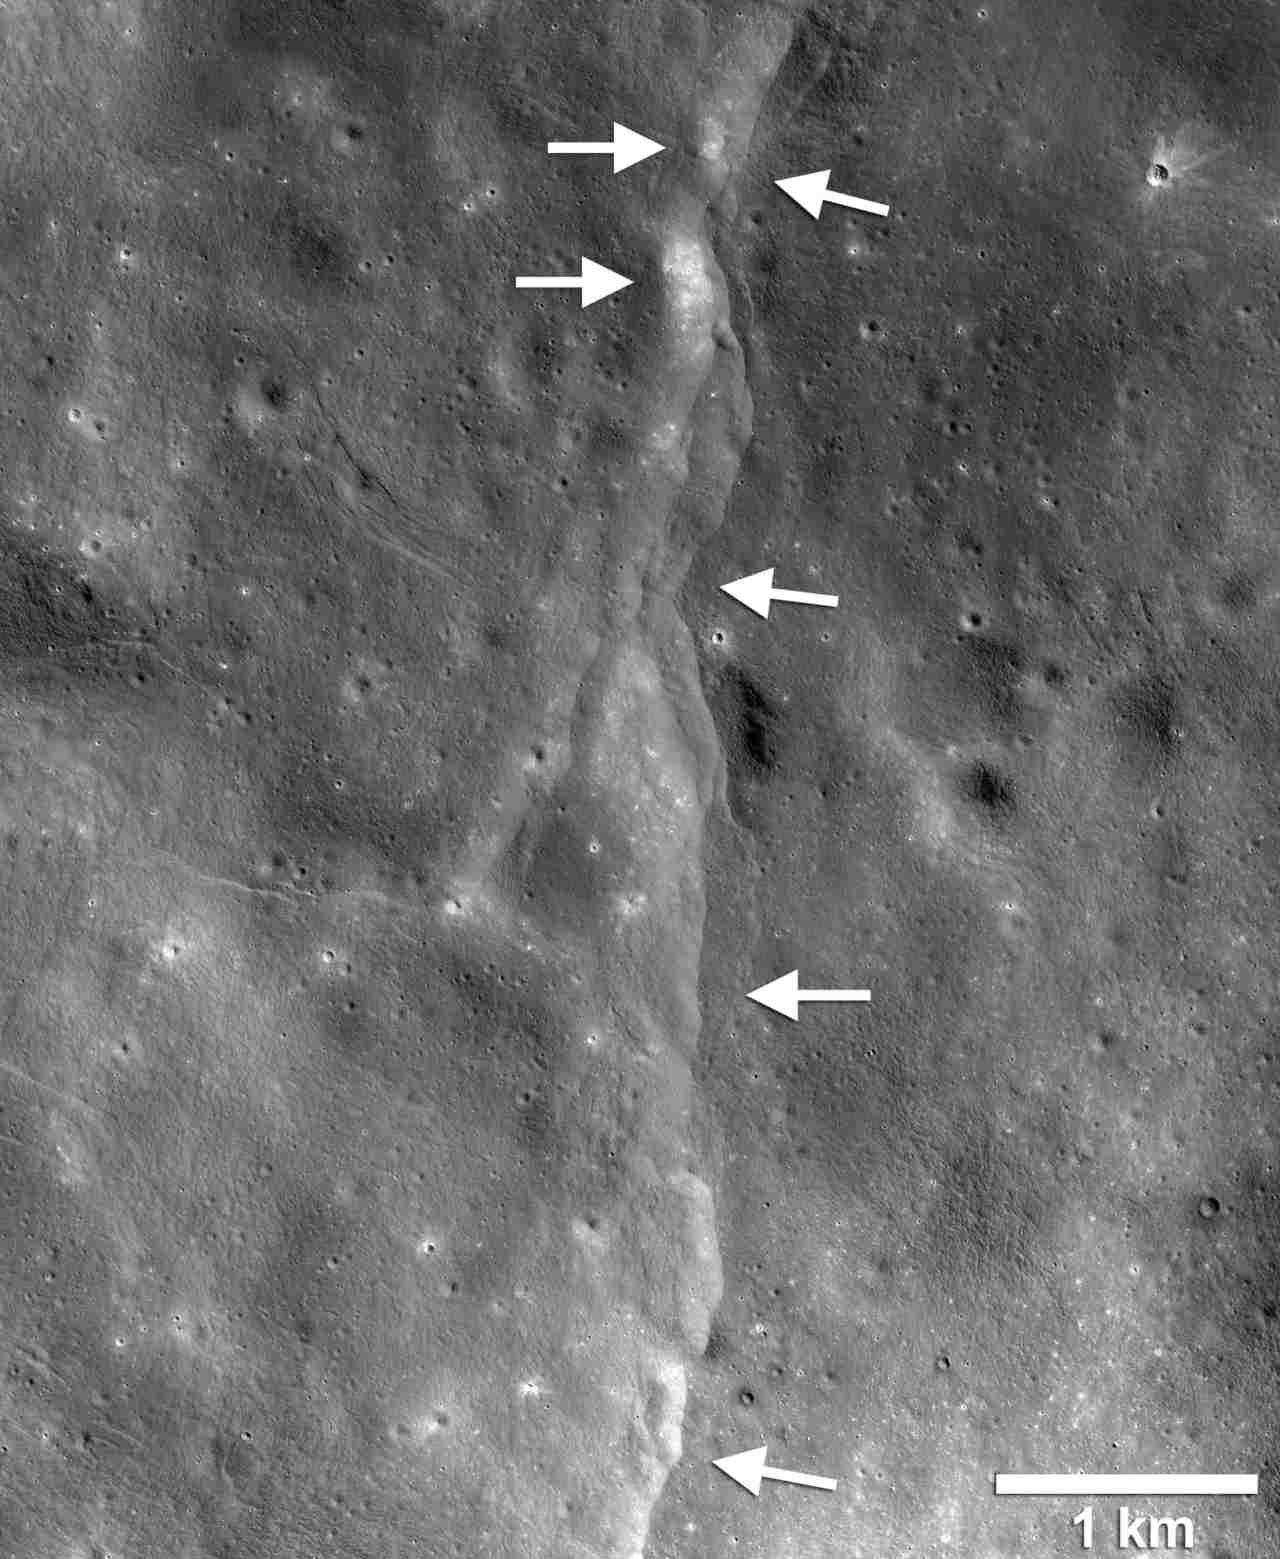 This prominent thrust fault is one of thousands discovered in images by the NASA Lunar Reconnaissance Orbiter Camera (LROC). The fault scarp or cliff is like a stair-step in the lunar landscape, formed when the near-surface crust is pushed together, breaks, and is thrust upward along a fault as the Moon contracts. Image: NASA/LROC